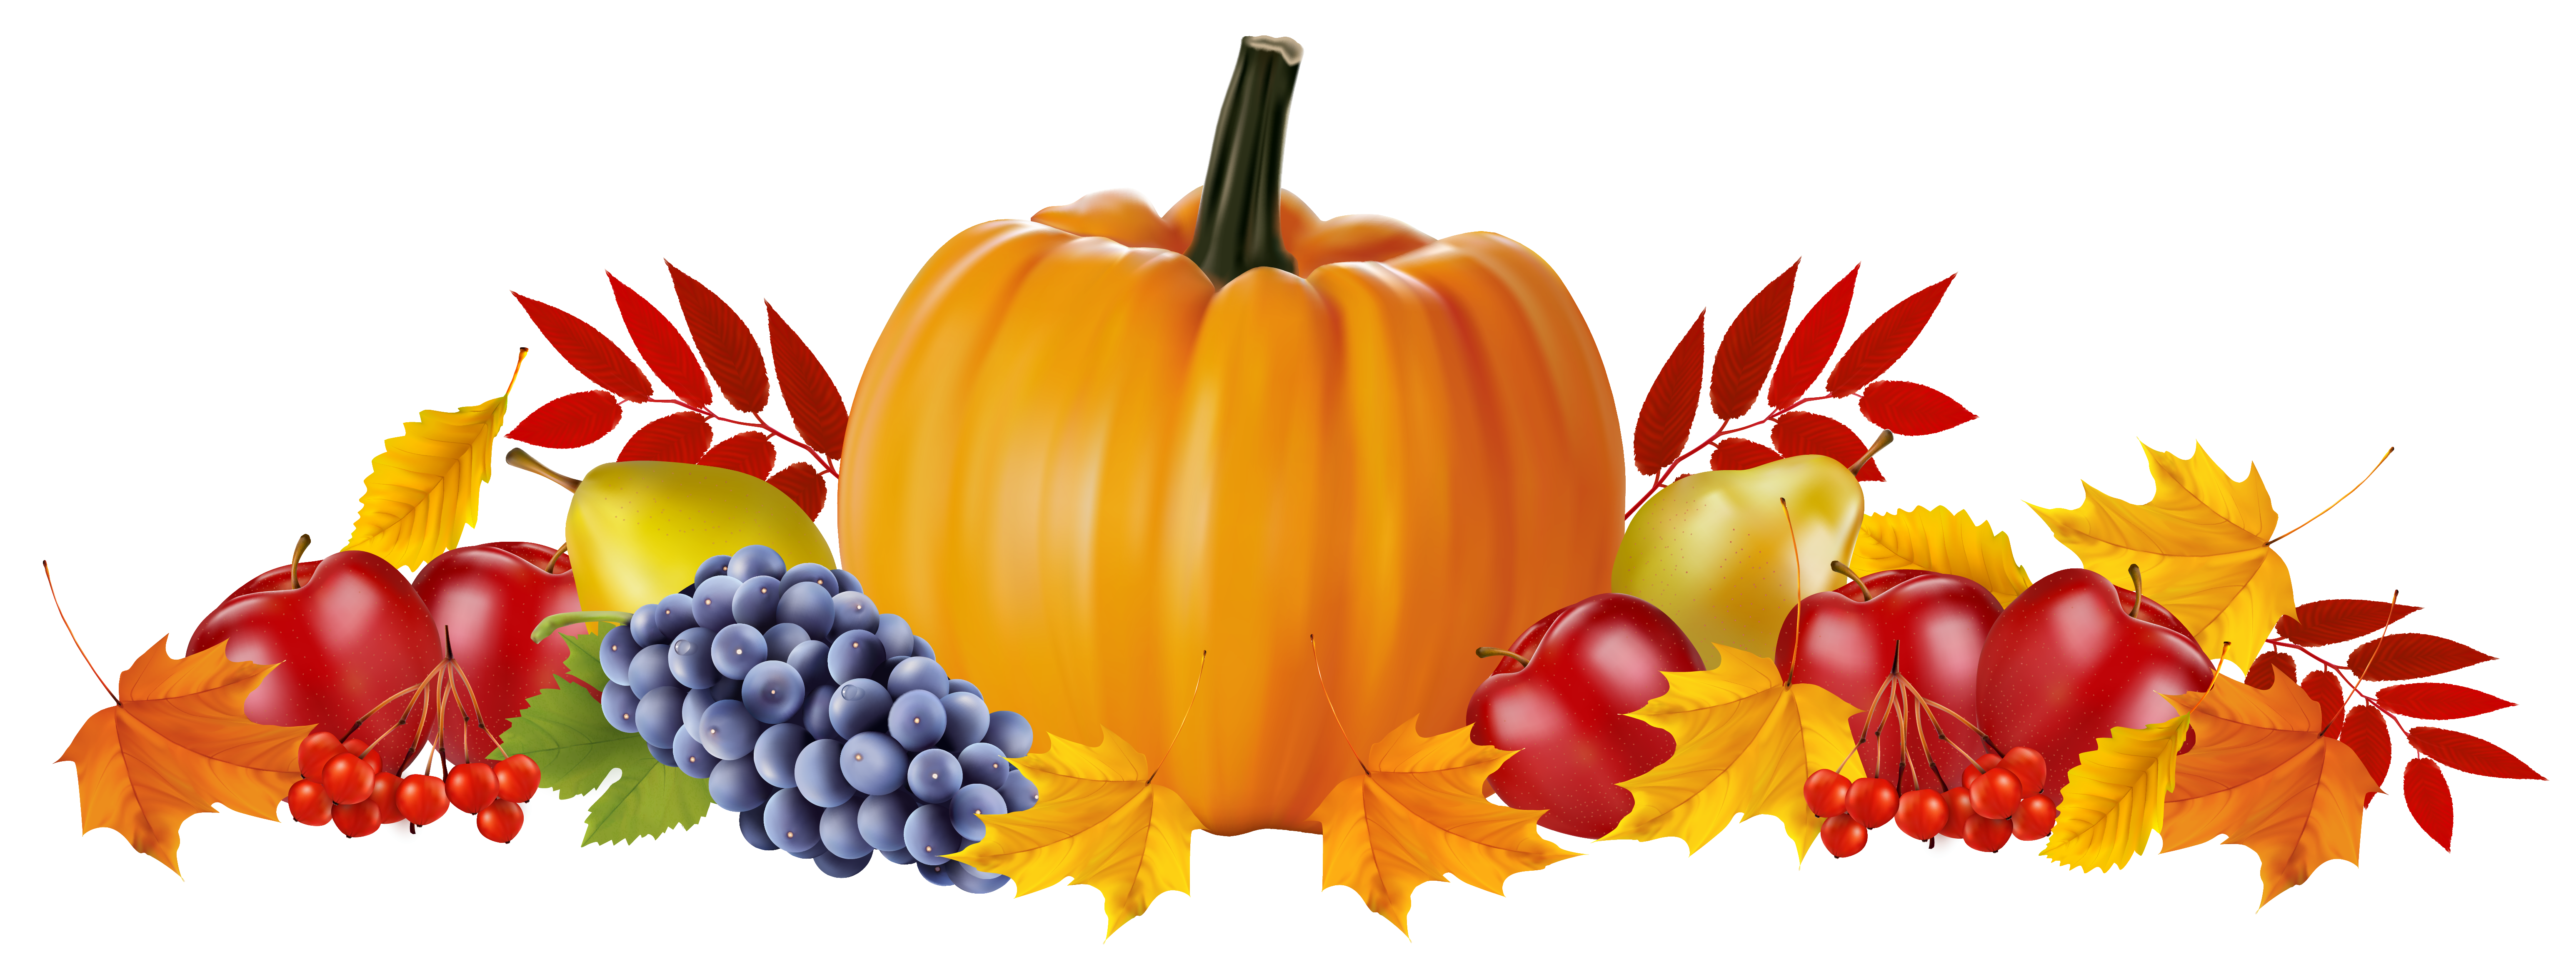 Clipart pumpkin with leaves graphic transparent download Autumn Fruits and Leaves PNG Clipart Image | Gallery Yopriceville ... graphic transparent download